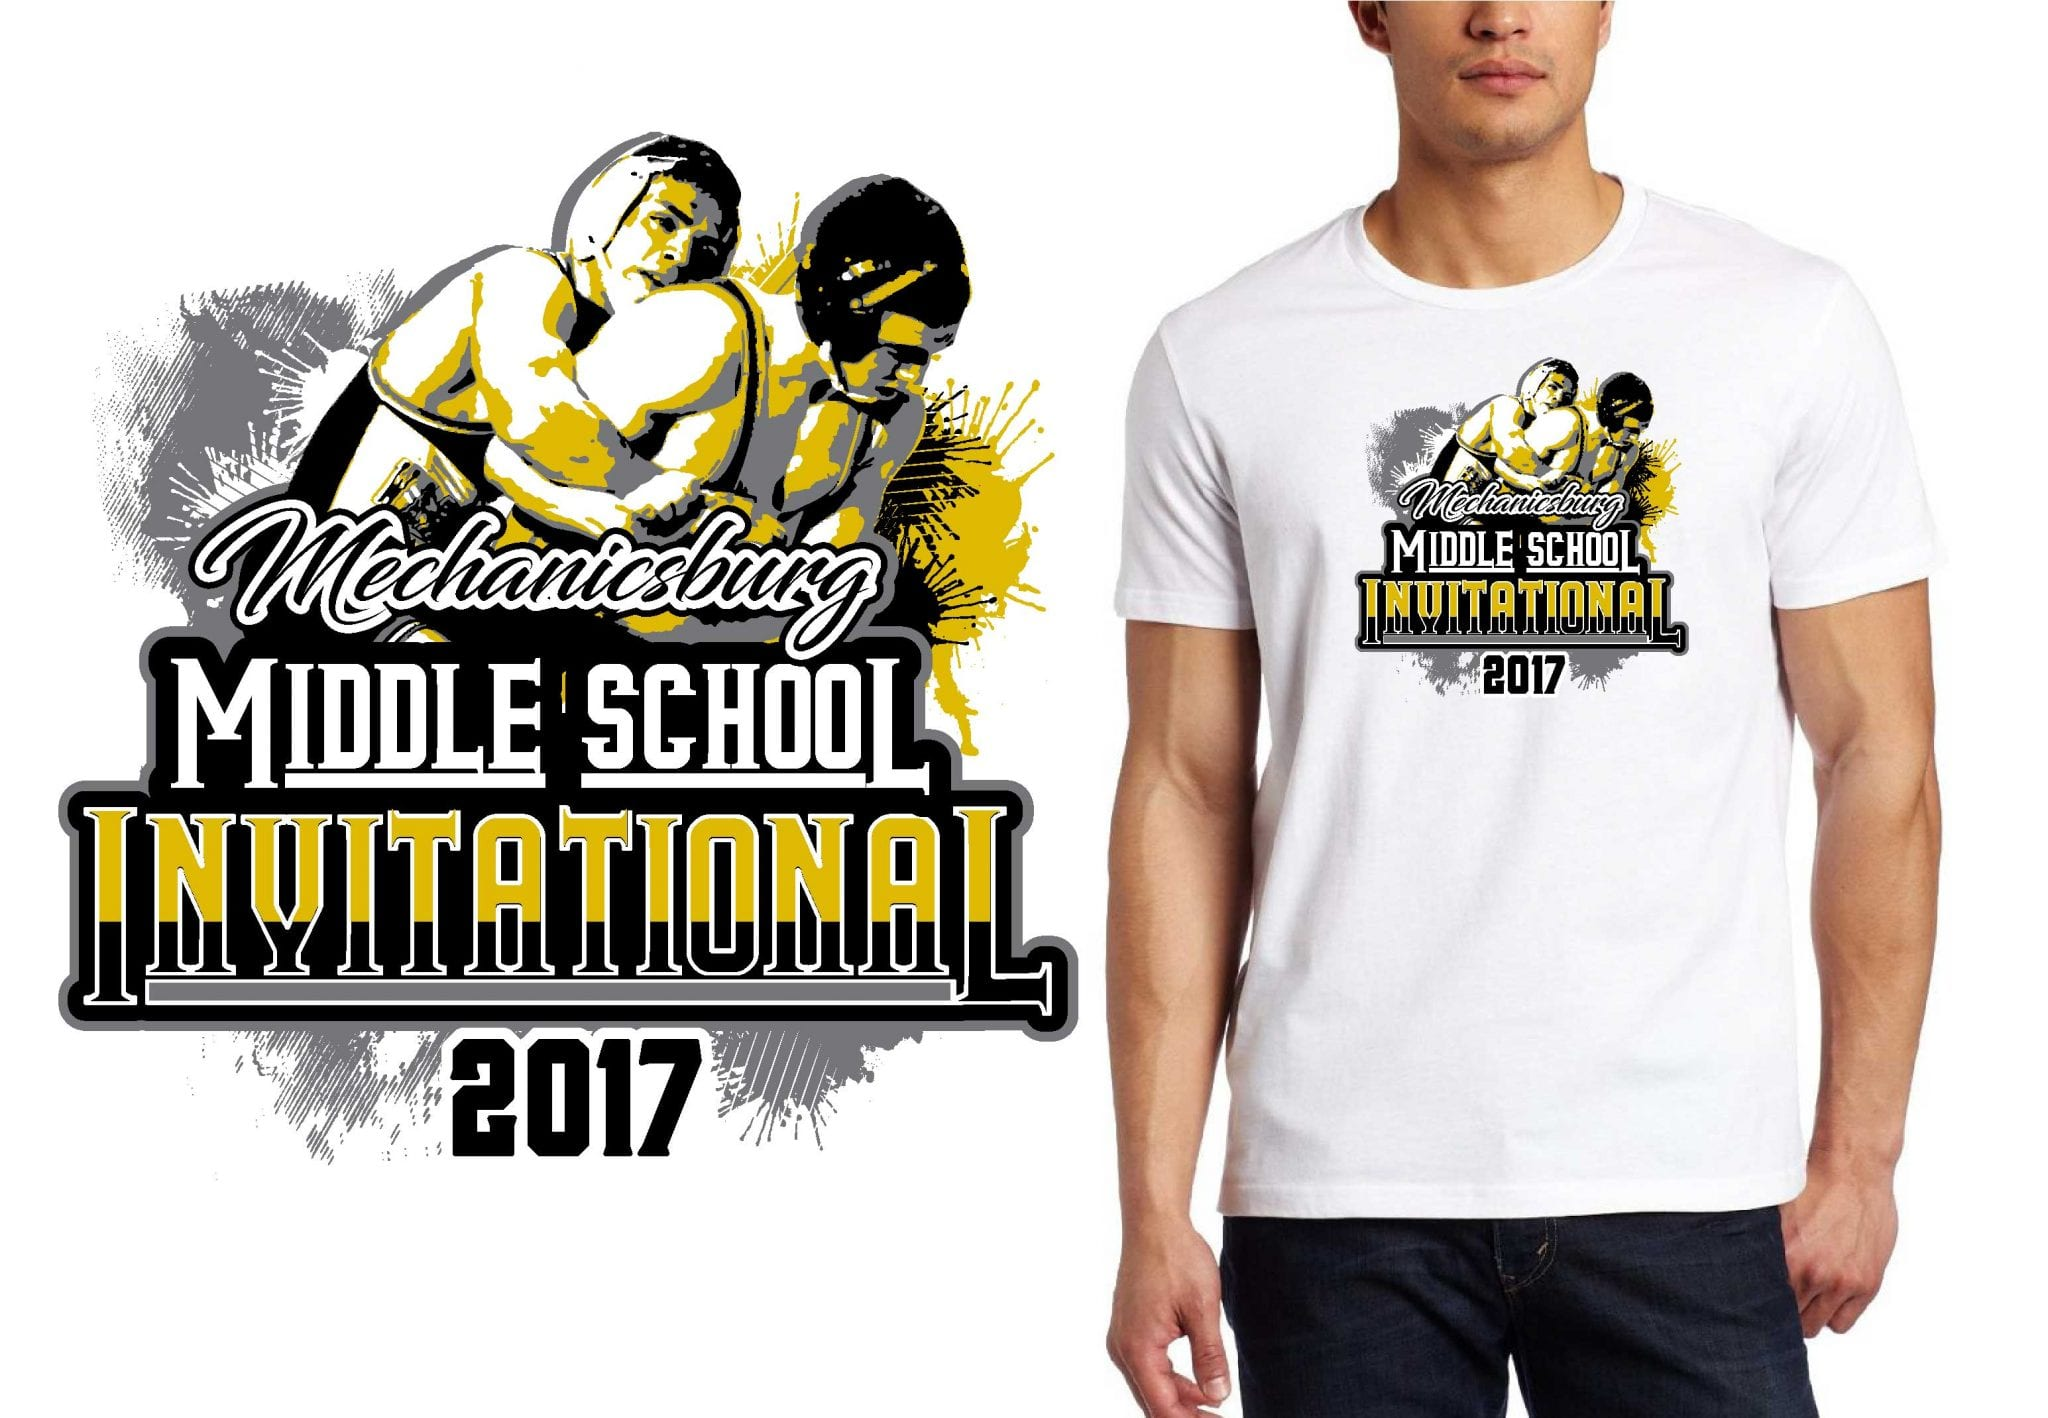 2017 Mechanicsburg Middle School Invitational vector logo design for wrestling t-shirt UrArtStudio